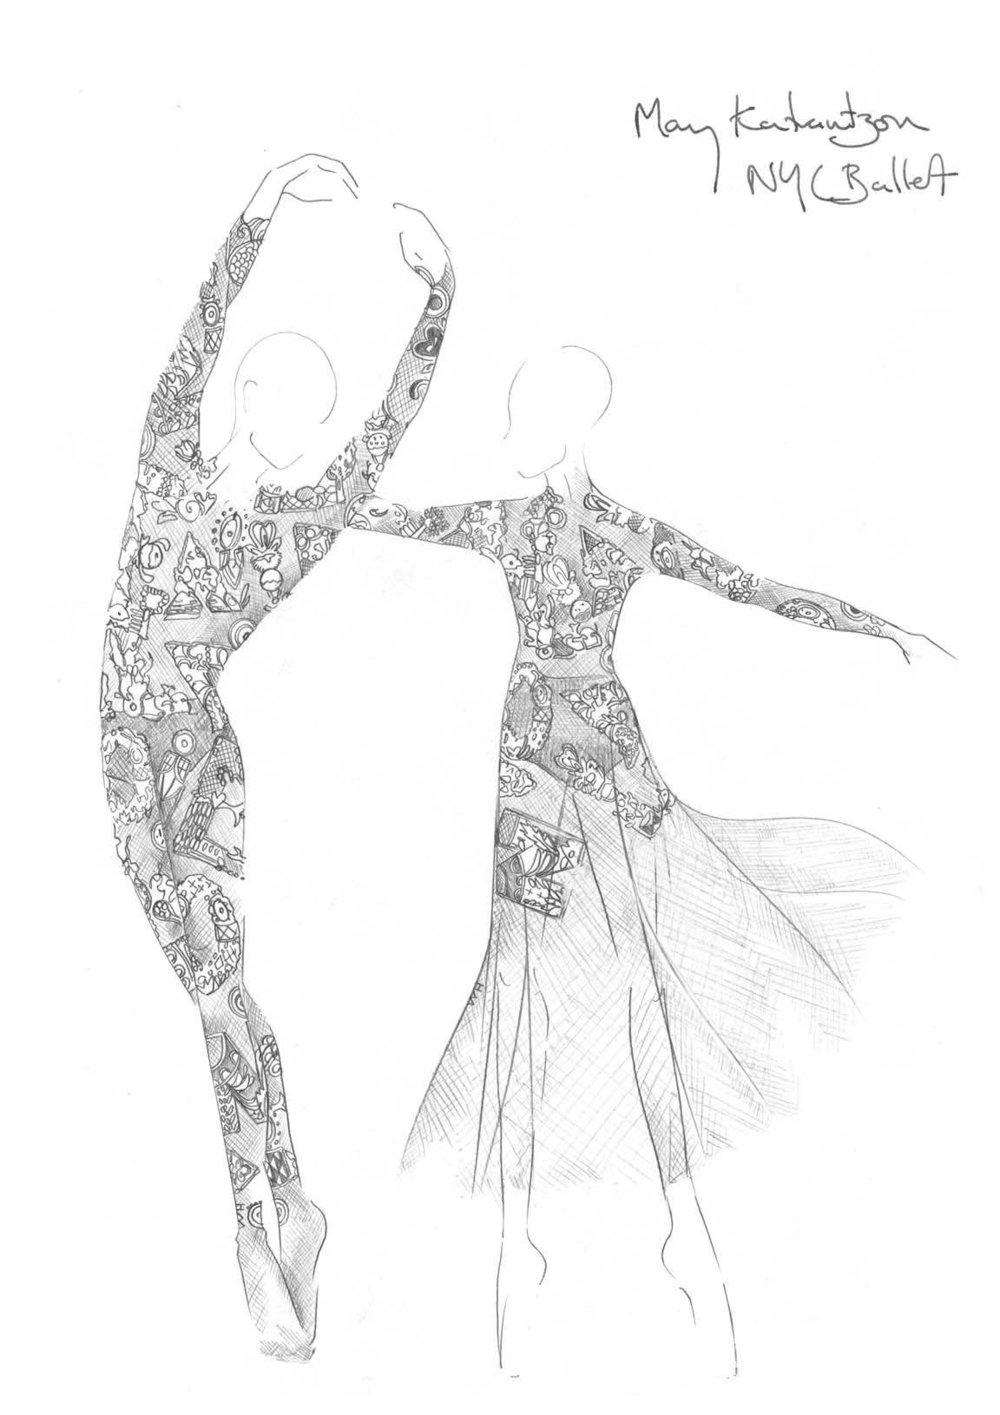 Mary Katrantzou for the New York City Ballet This year, Mary Katrantzou will create custom designed costumes for the New York City Ballet's Fall Gala opening night performance on September 23 alongside Carolina Herrera, Valentino Garavani, Thom Browne, and Alexander McQueen's Sarah Burton. Mary Katrantzou worked together with resident choreographer Justin Peck to create the ideas for the looks, which are inspired by her second Resort offering for Spring Summer 2015. In order to emphasize the dancers movement and physiques, Mary wanted to create something subtle and agile to evoke a certain emotion and mimic Justin's clean choreography. Her designs act as a second skin for the dancers. For the Prime Male dancer, Mary has created a lace bodysuit, while the Prima ballerina's costume exudes an ethereal air with an added translucent tulle skirt, the dancers will also wear pigmented undergarments for a touch of colour. Here, a sketch of the costumes portrays her delicate designs. via: marykatrantzou.com